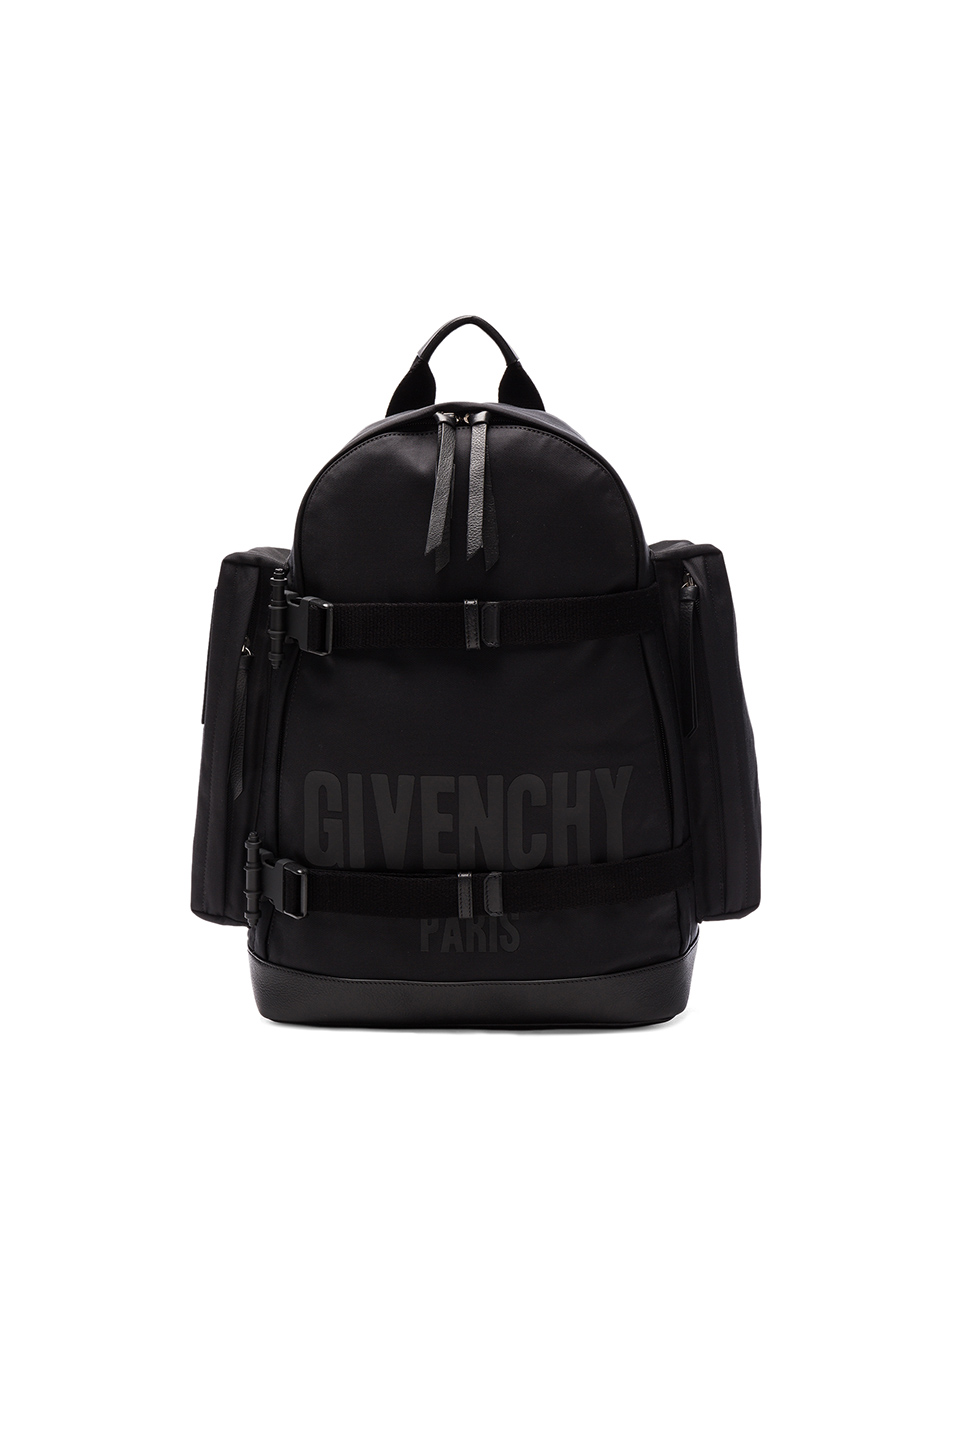 Photo of Givenchy Backpack in Black - shop Givenchy menswear